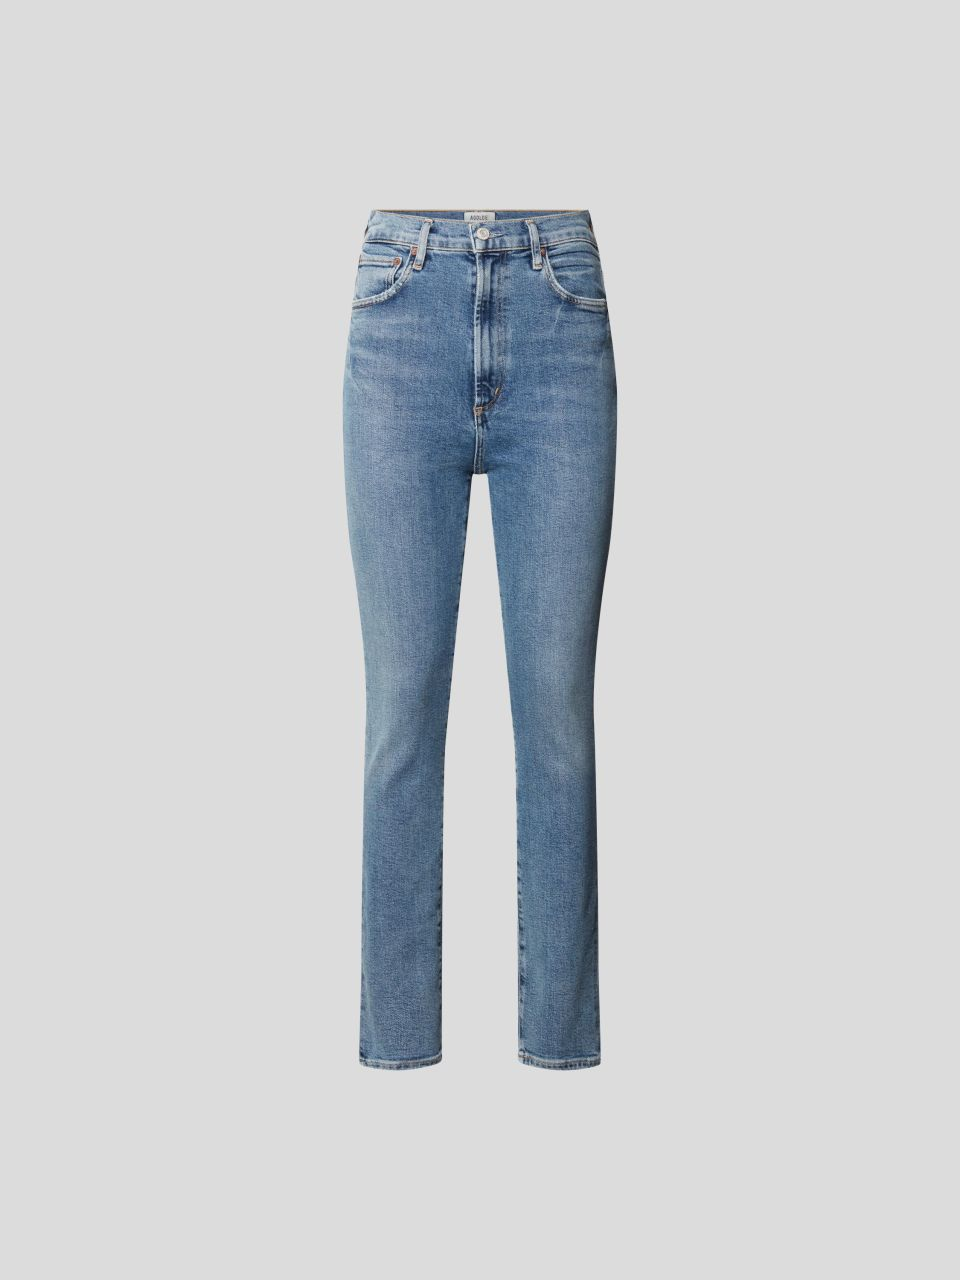 High Rise Jeans im Skinny Fit